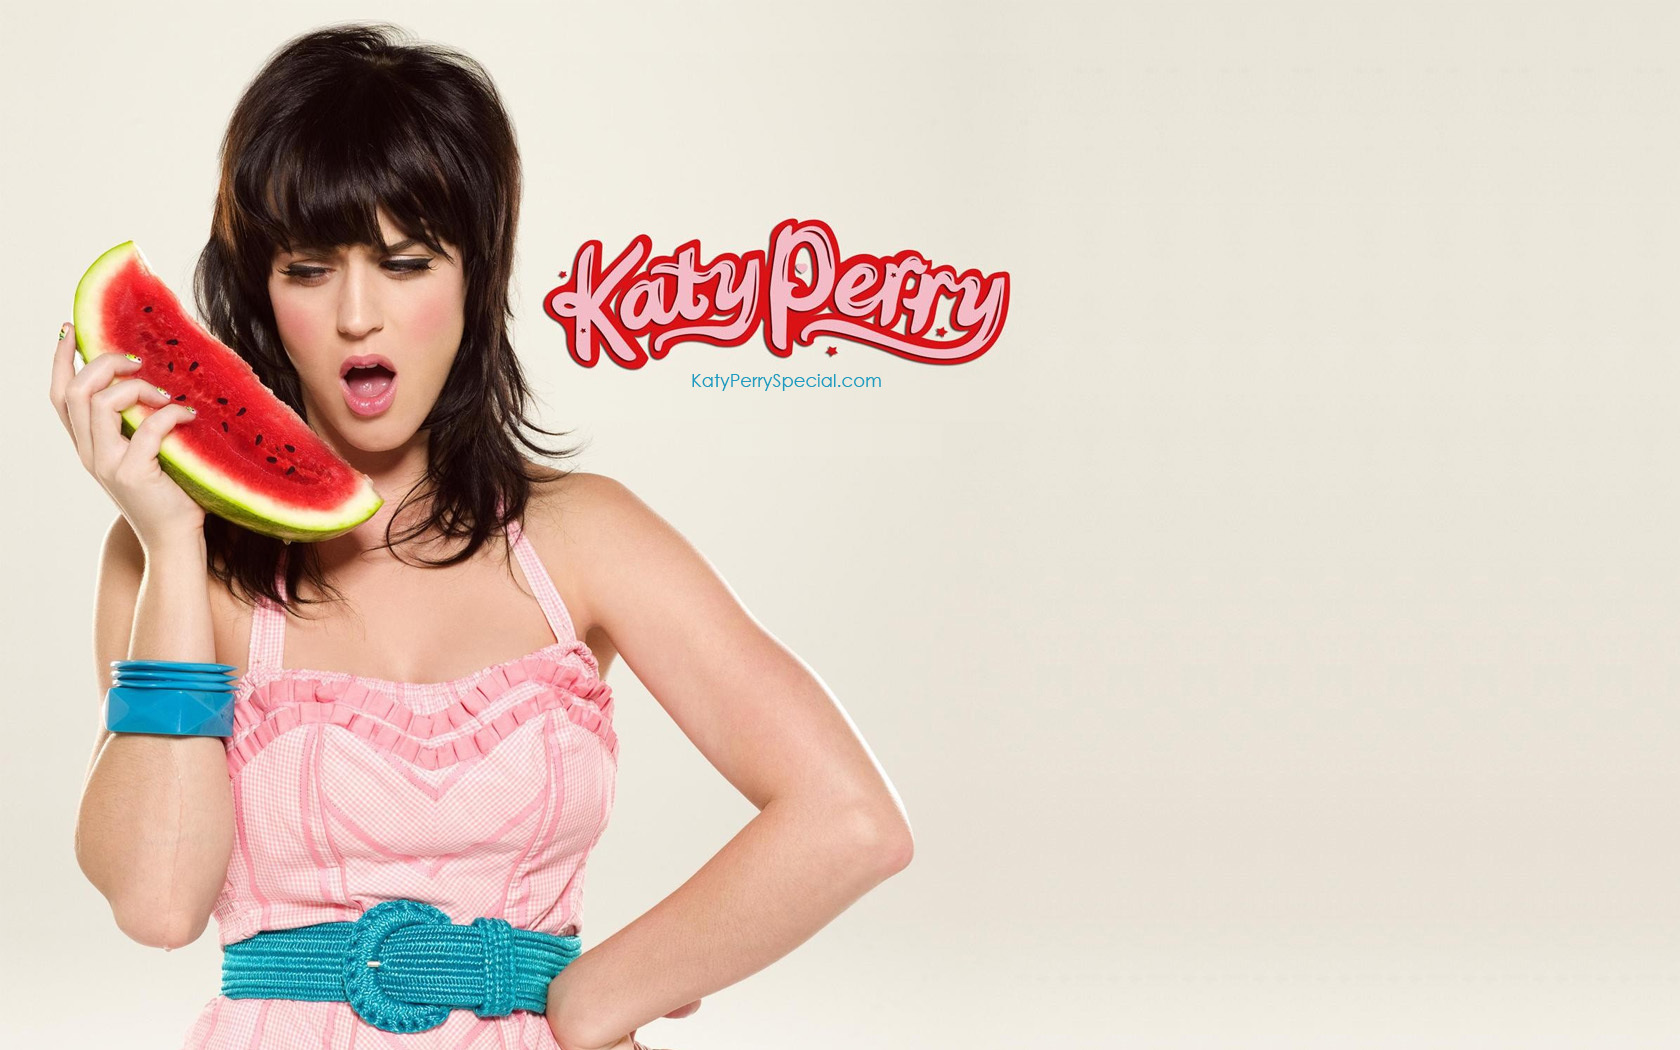 katy perry!!!!!!